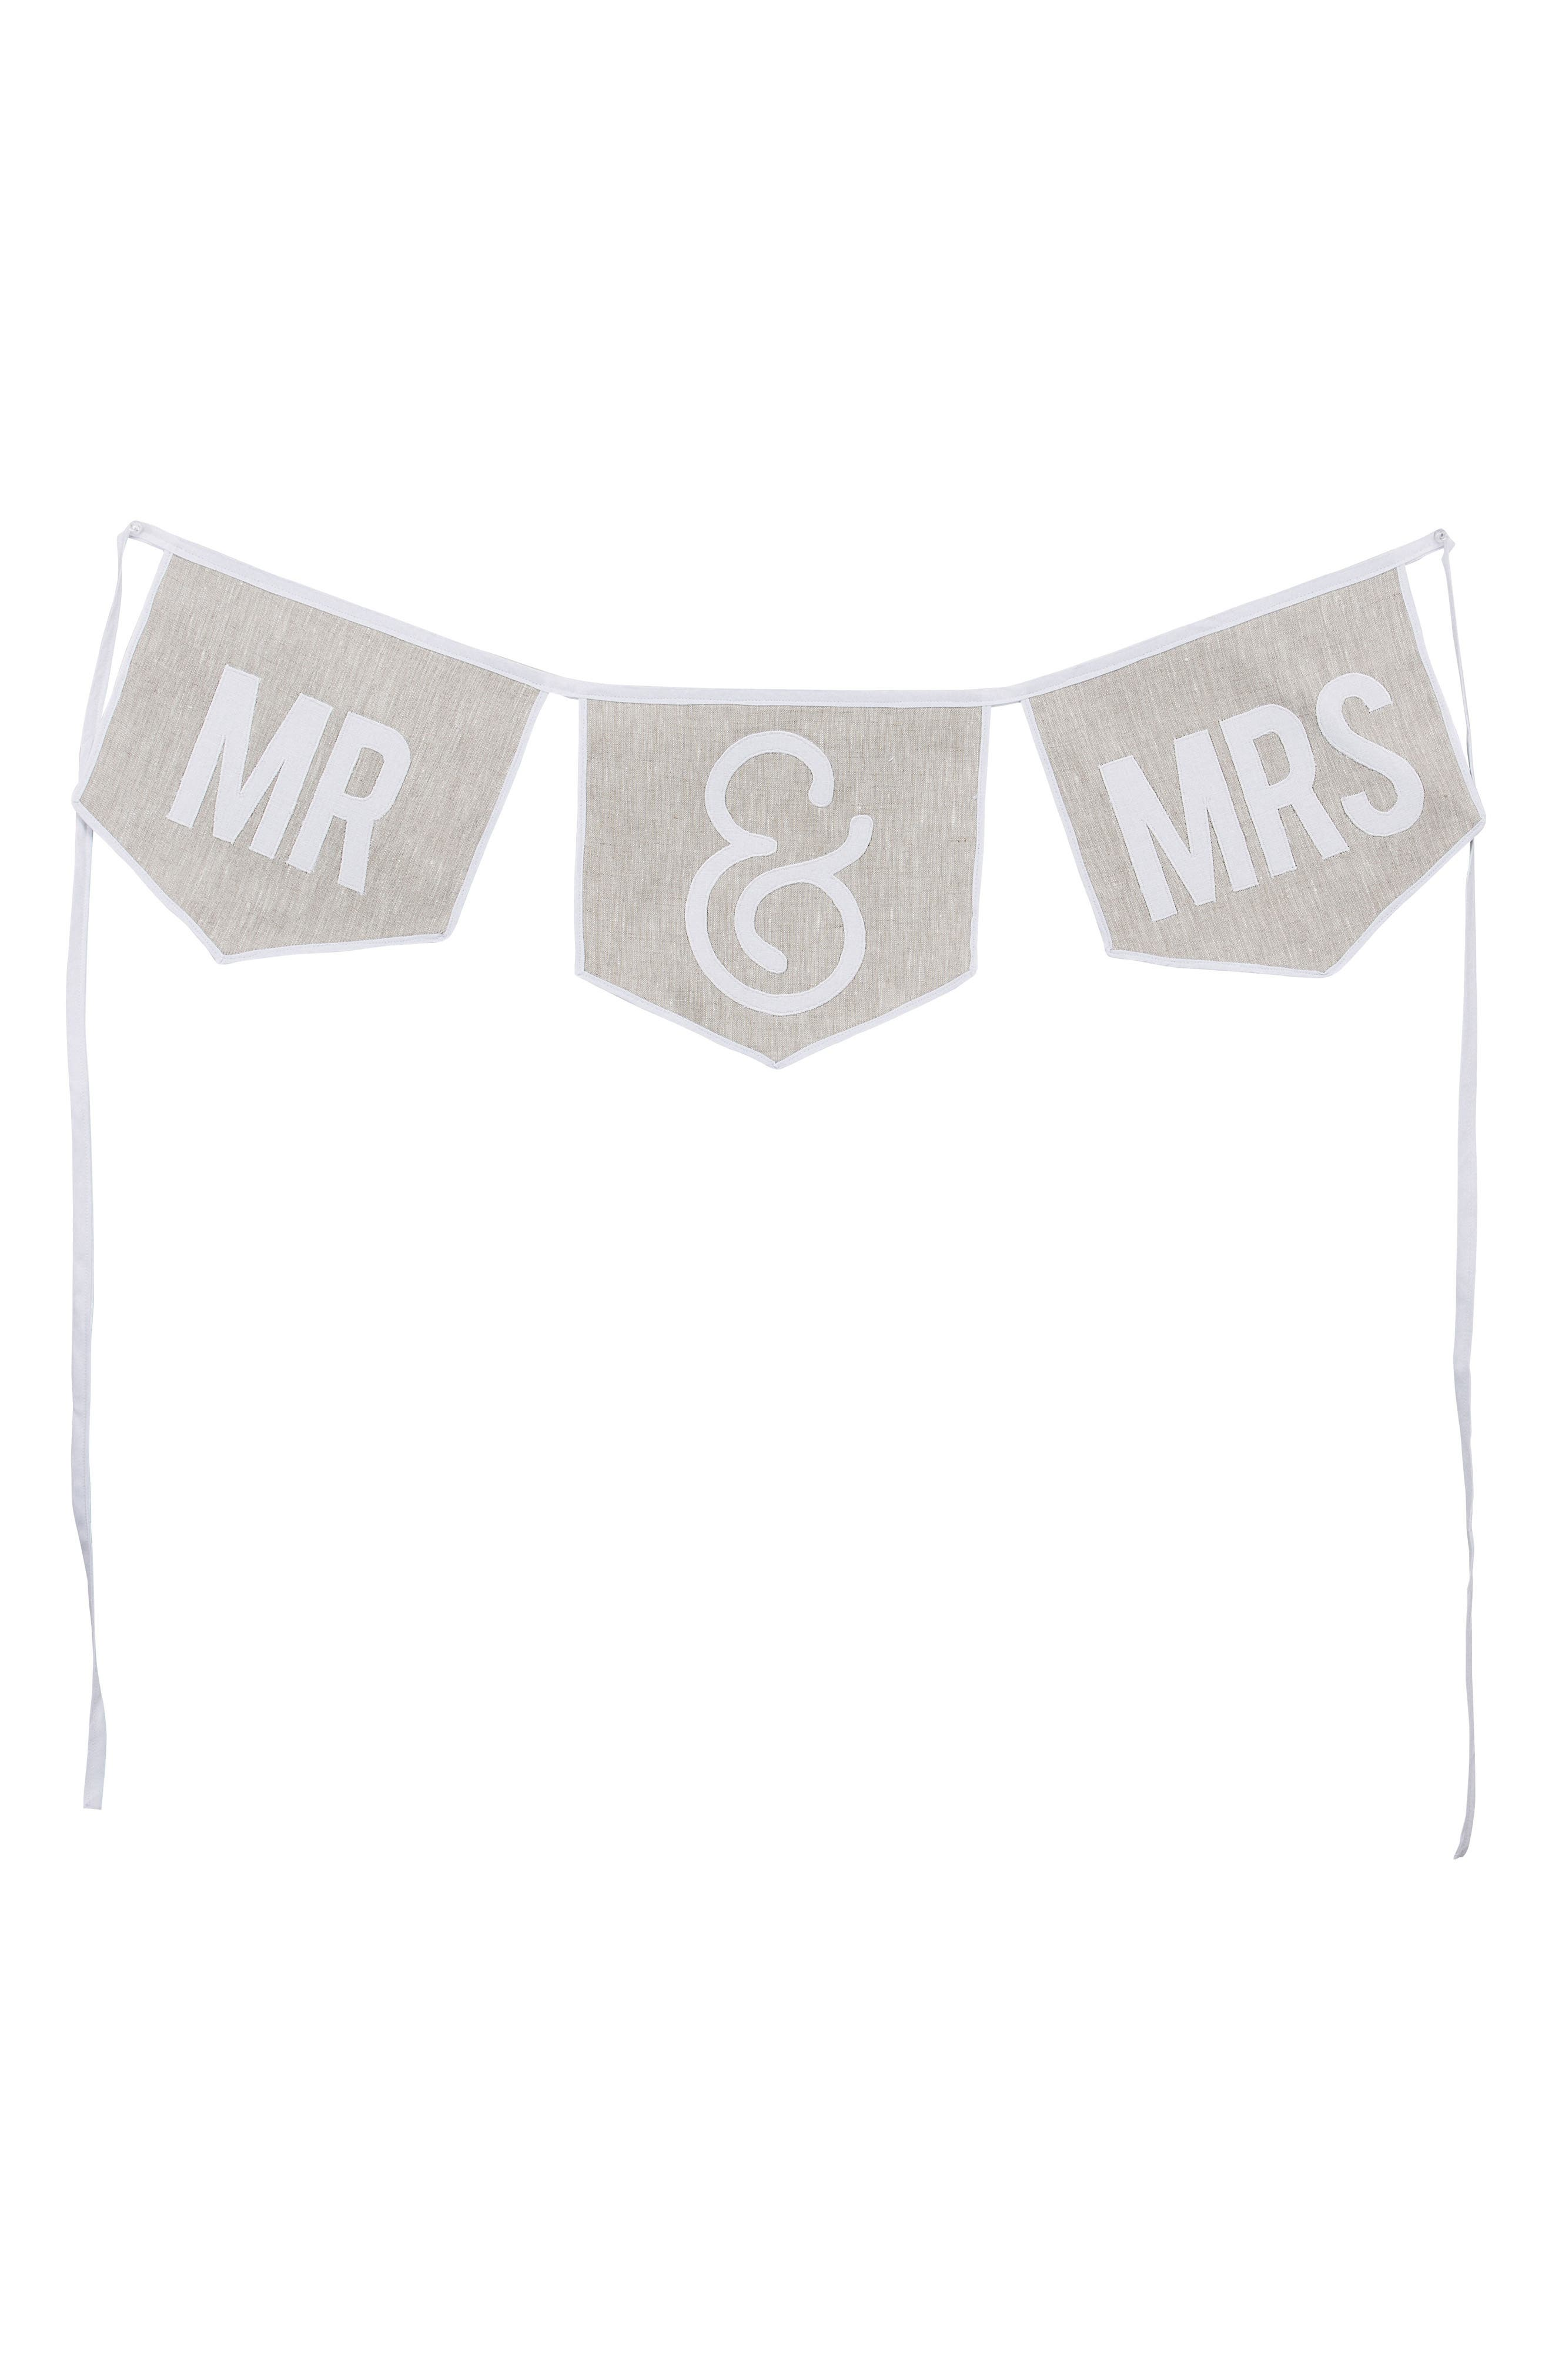 Mr & Mrs Banner,                         Main,                         color, White/ Gray